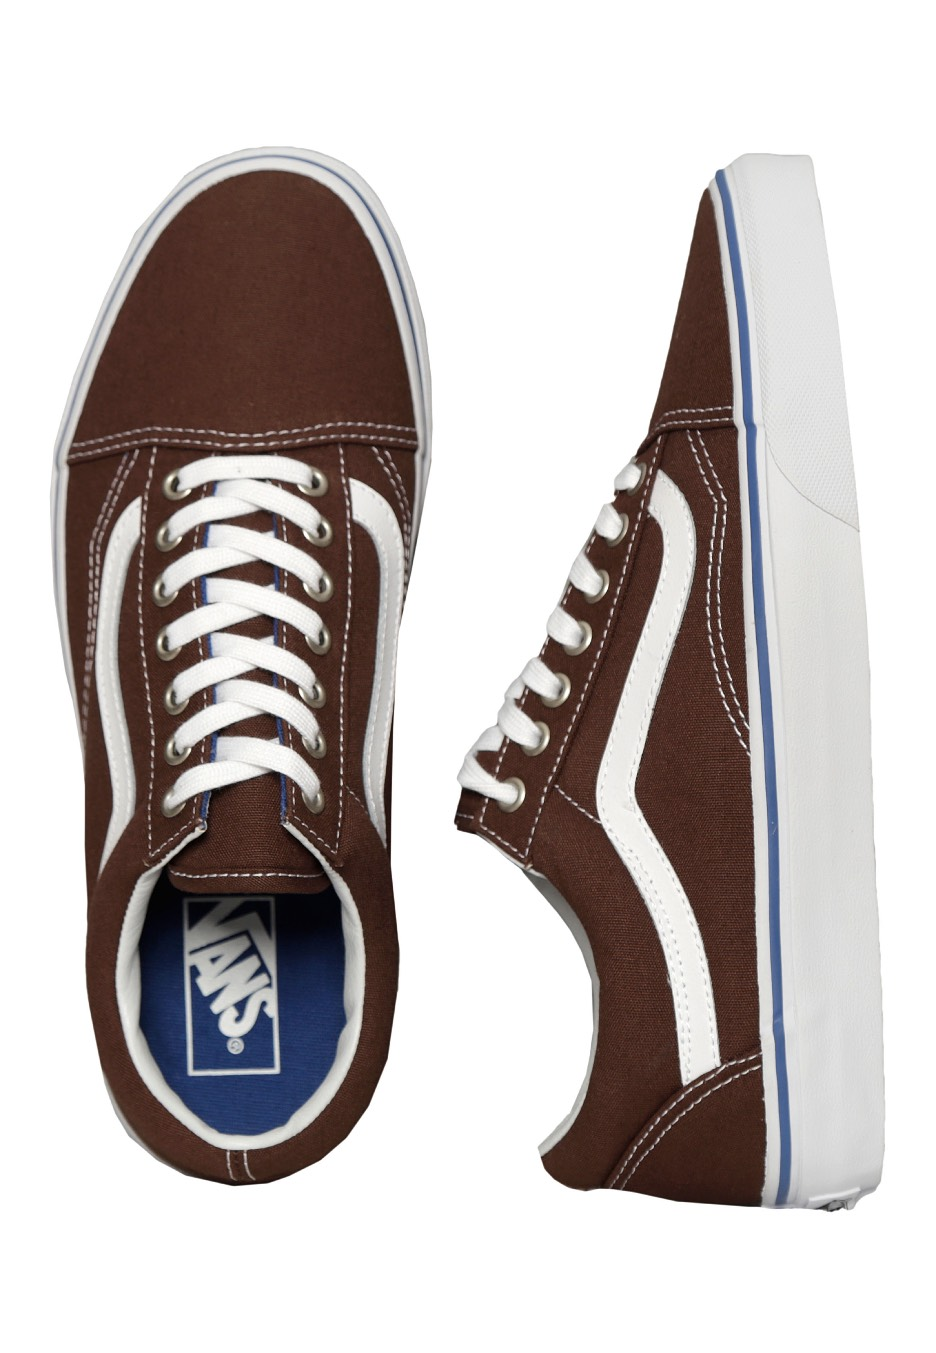 520accce3857 Vans - Old Skool Chestnut True White - Shoes - Impericon.com UK